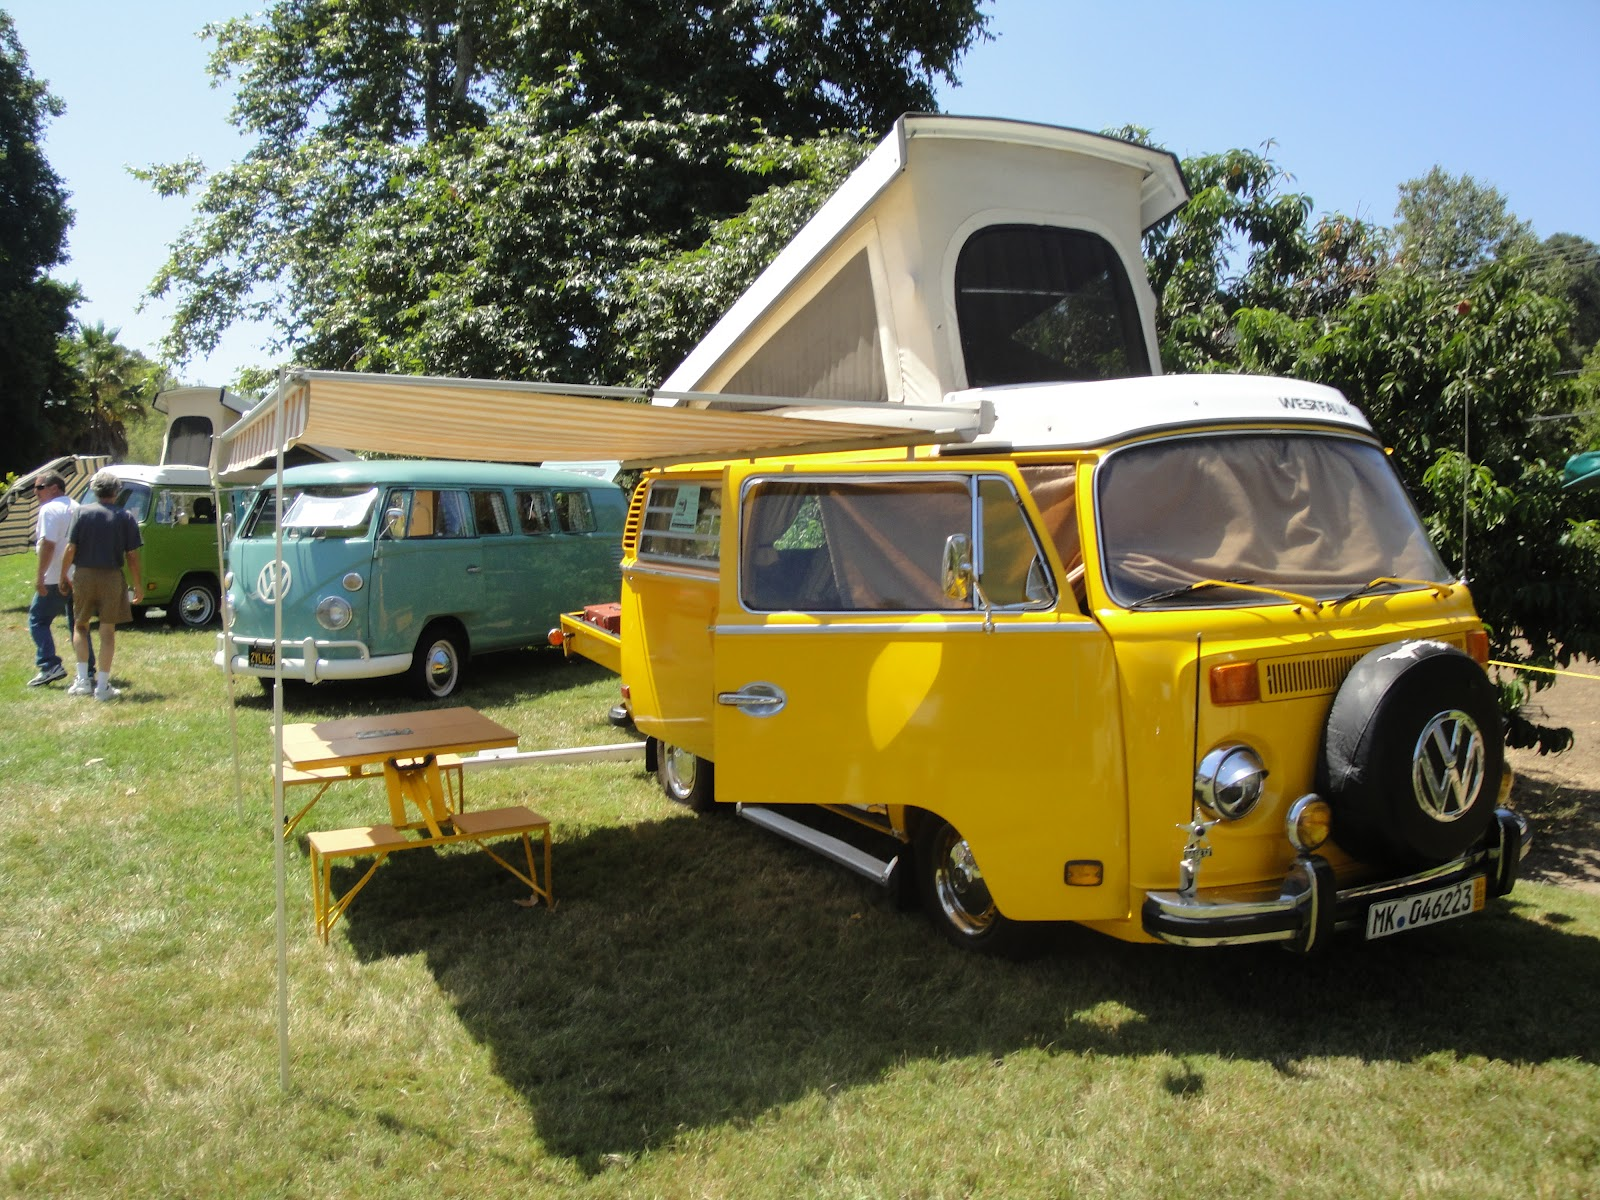 Personalized Autohaus/Wayne Baker Racing: VW Bus - Love, Peace & Camping!